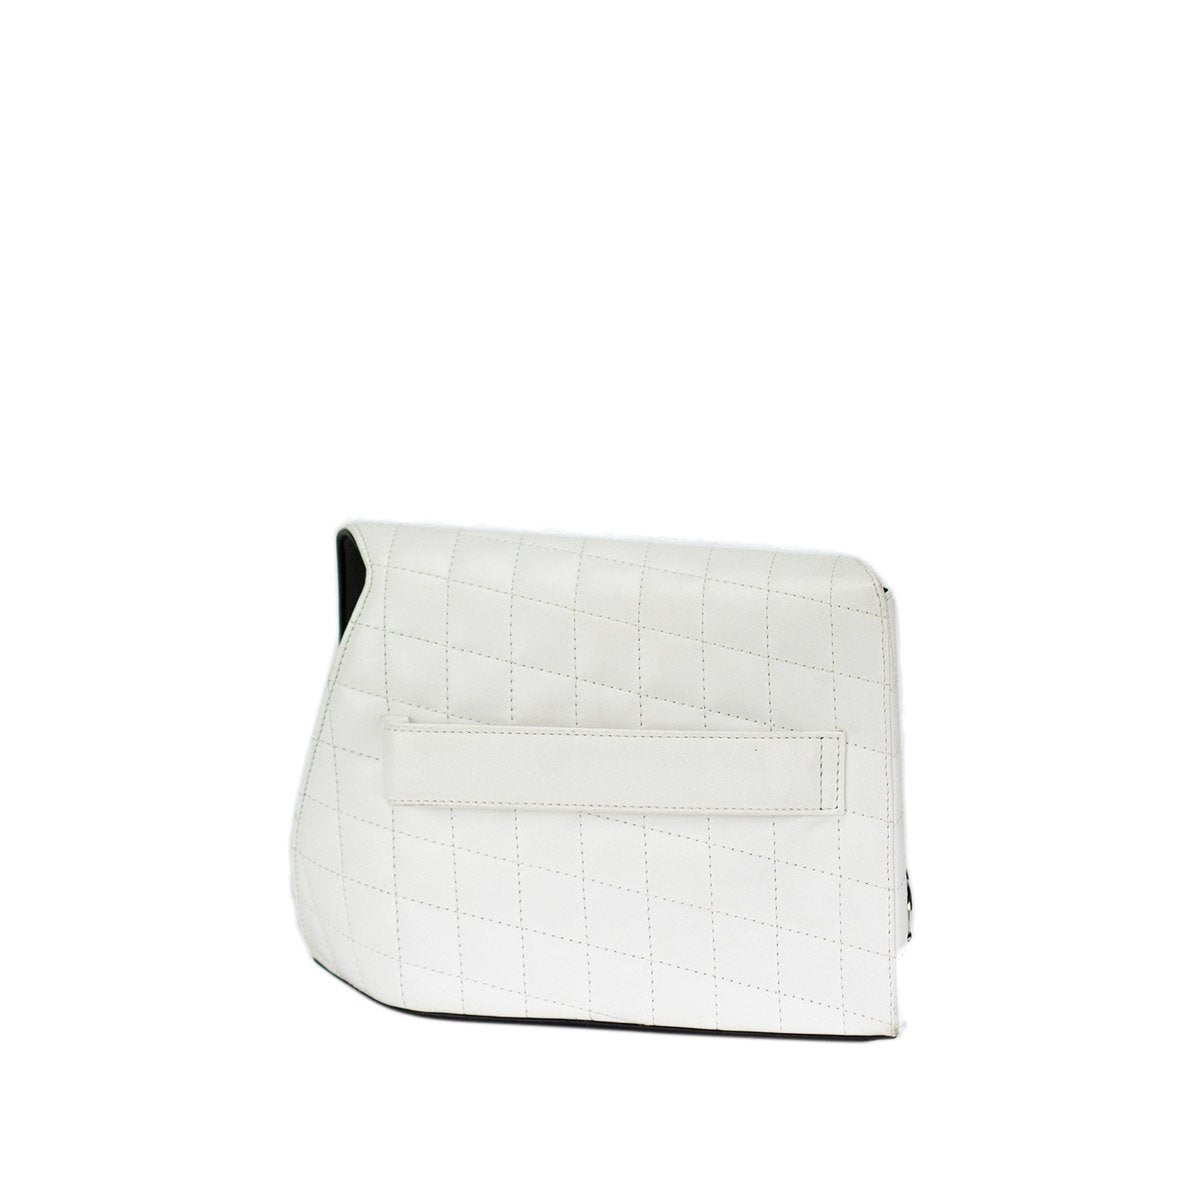 Chanel Mini White Lambskin Quilted Clutch